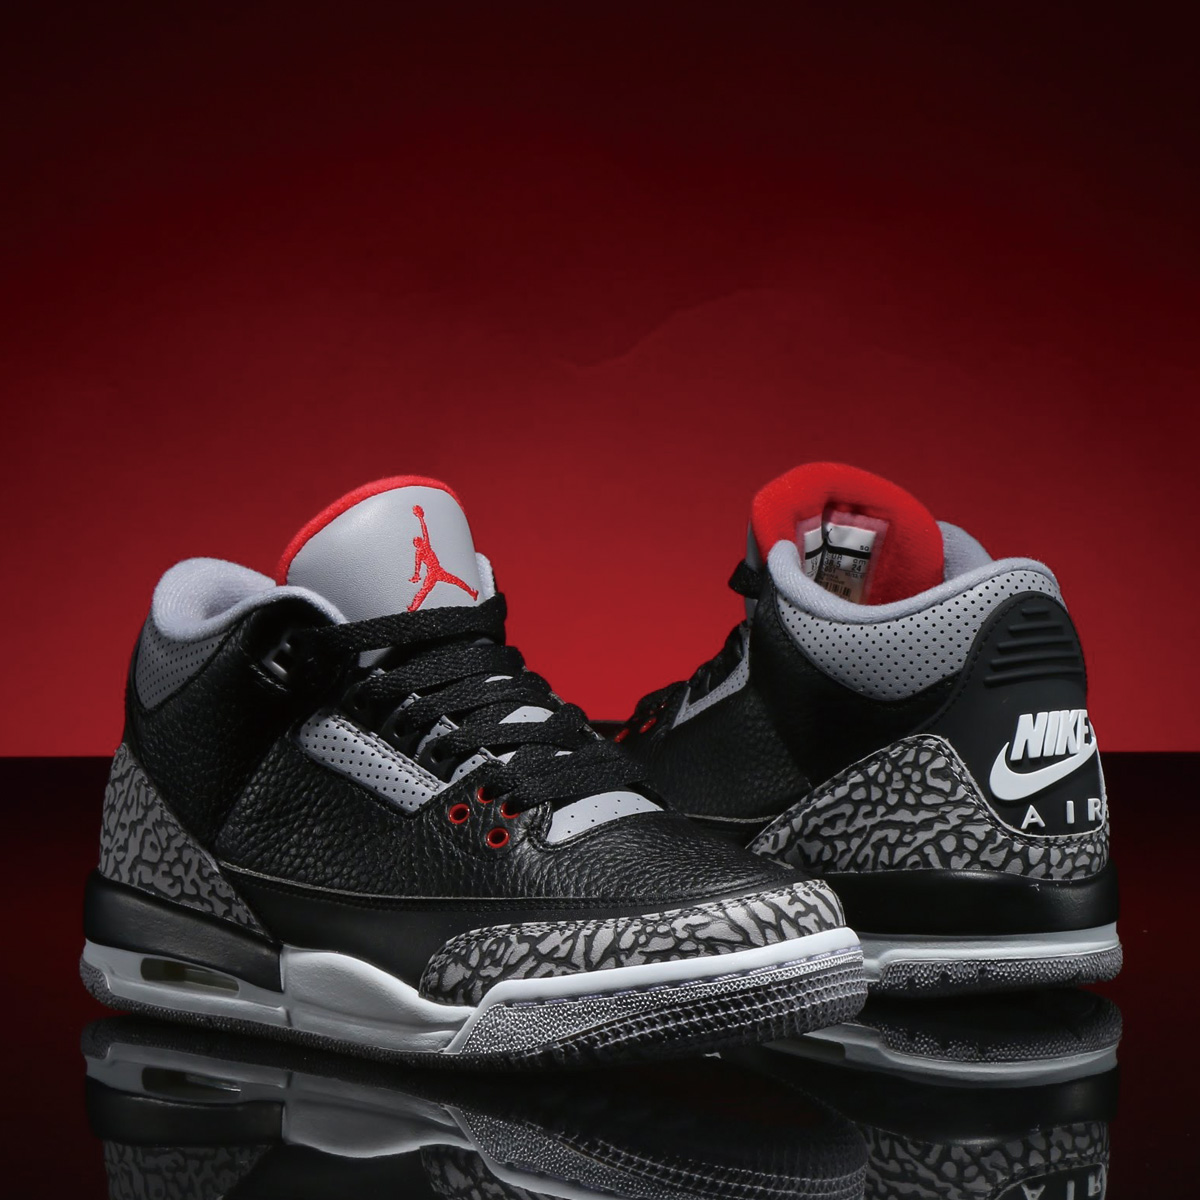 NIKE AIR JORDAN 3 RETRO OG BG (ナイキ エア ジョーダン 3 レトロ OG BG) BLACK/FIRE RED-CEMENT GREY-WHITE【ボーイズ スニーカー】18SP-S